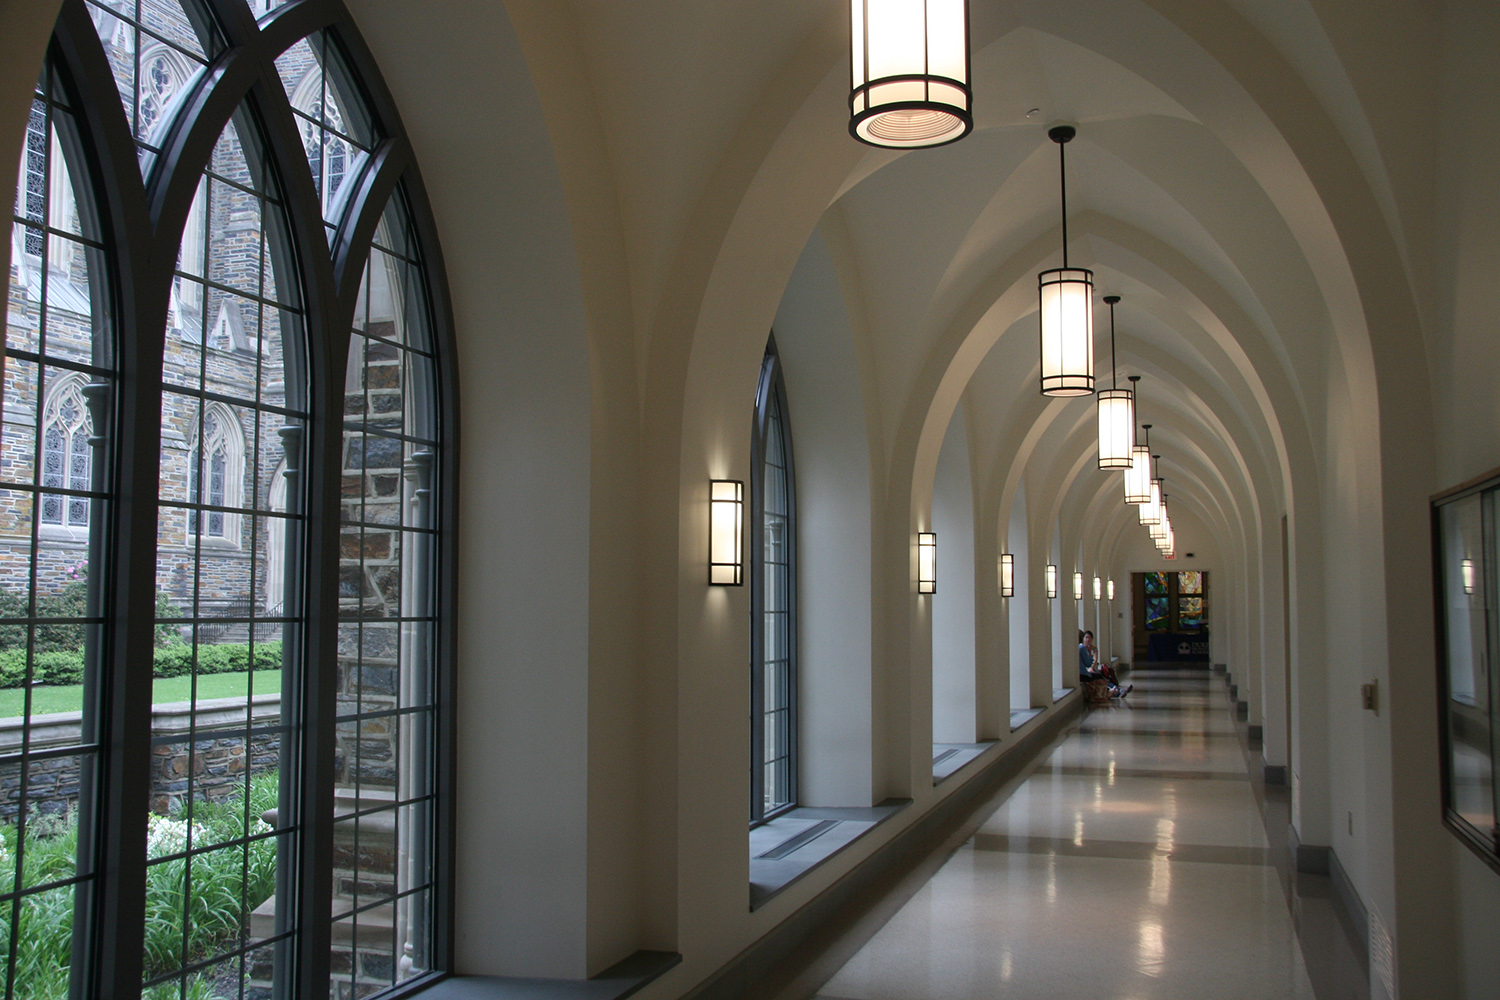 Colonnade and Cylinder complement one another in education lighting designs, seen here along a regal campus hallway.